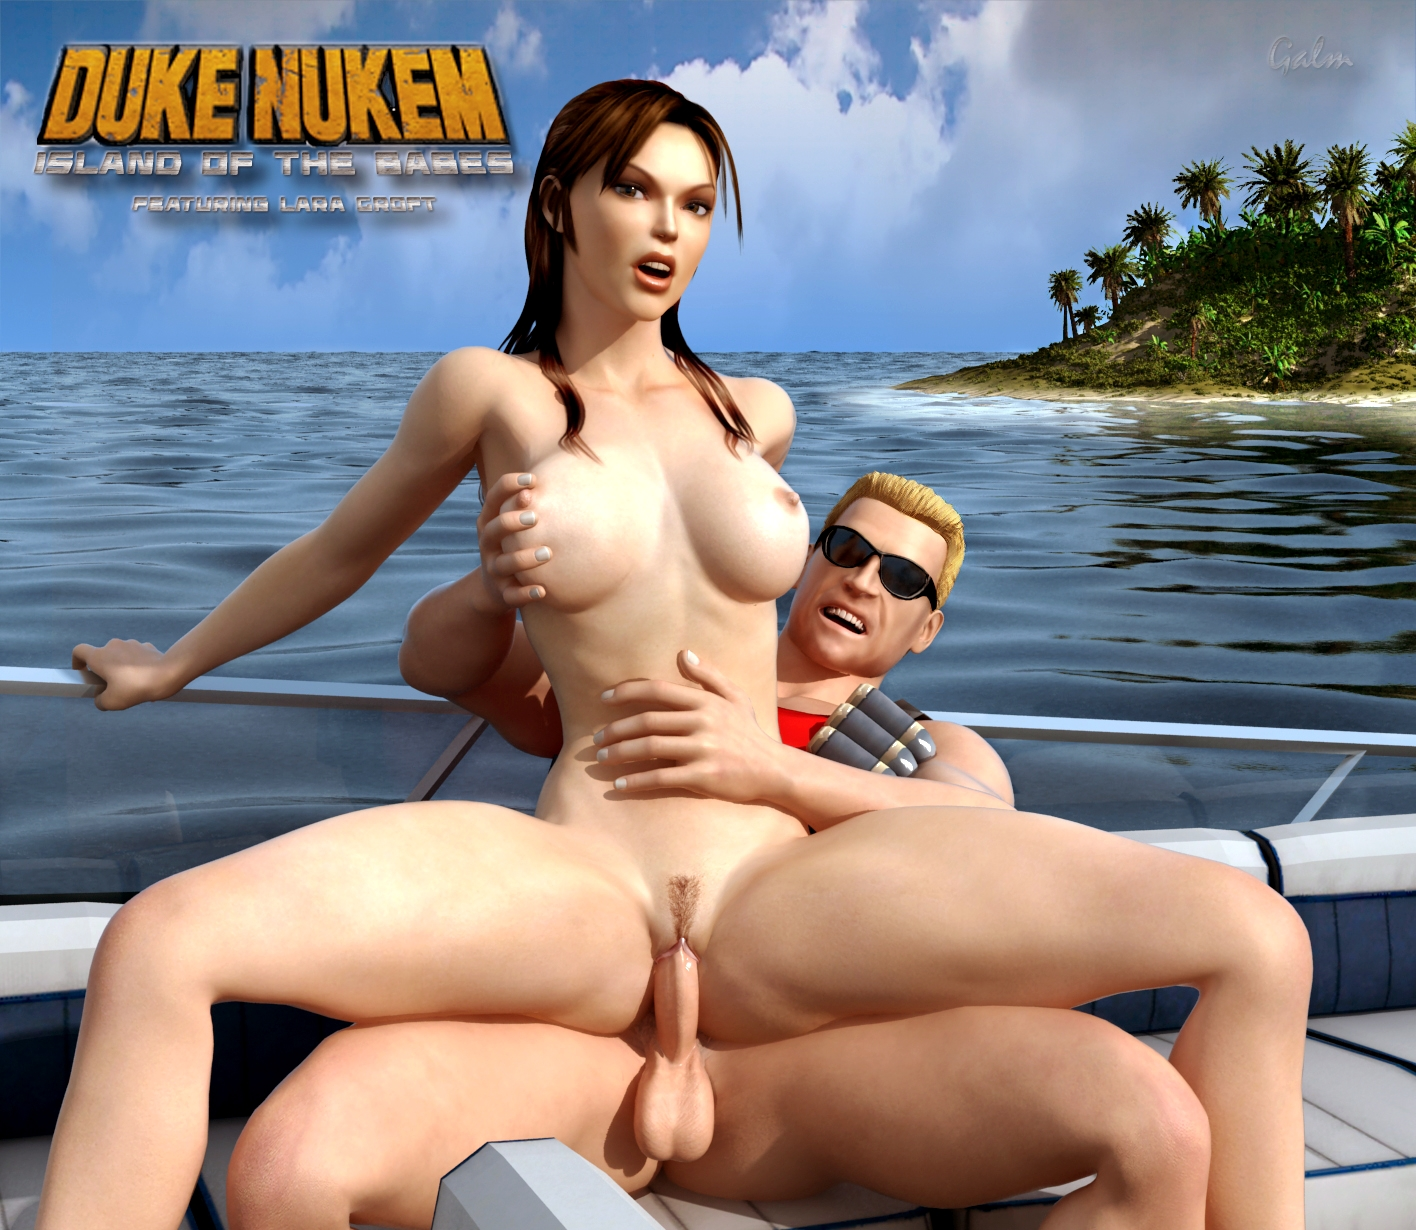 Duke nukem hentai porn adult videos